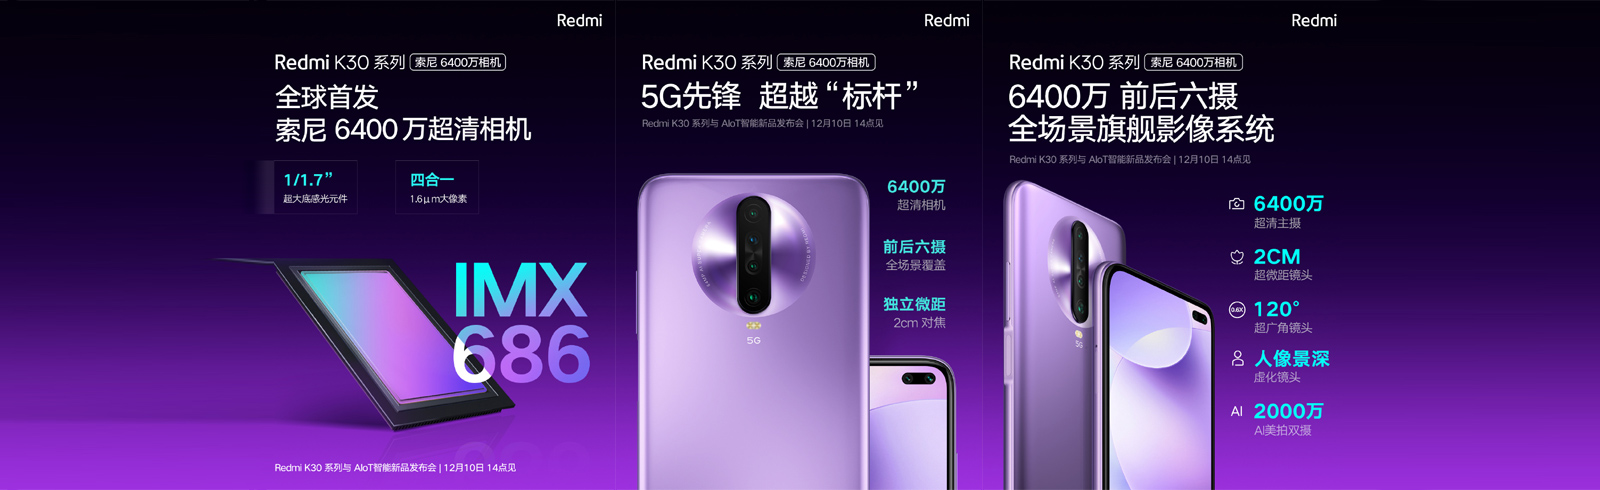 Xiaomi confirms 64MP Sony IMX686 for the Redmi K30 5G and the Redmi K30 4G